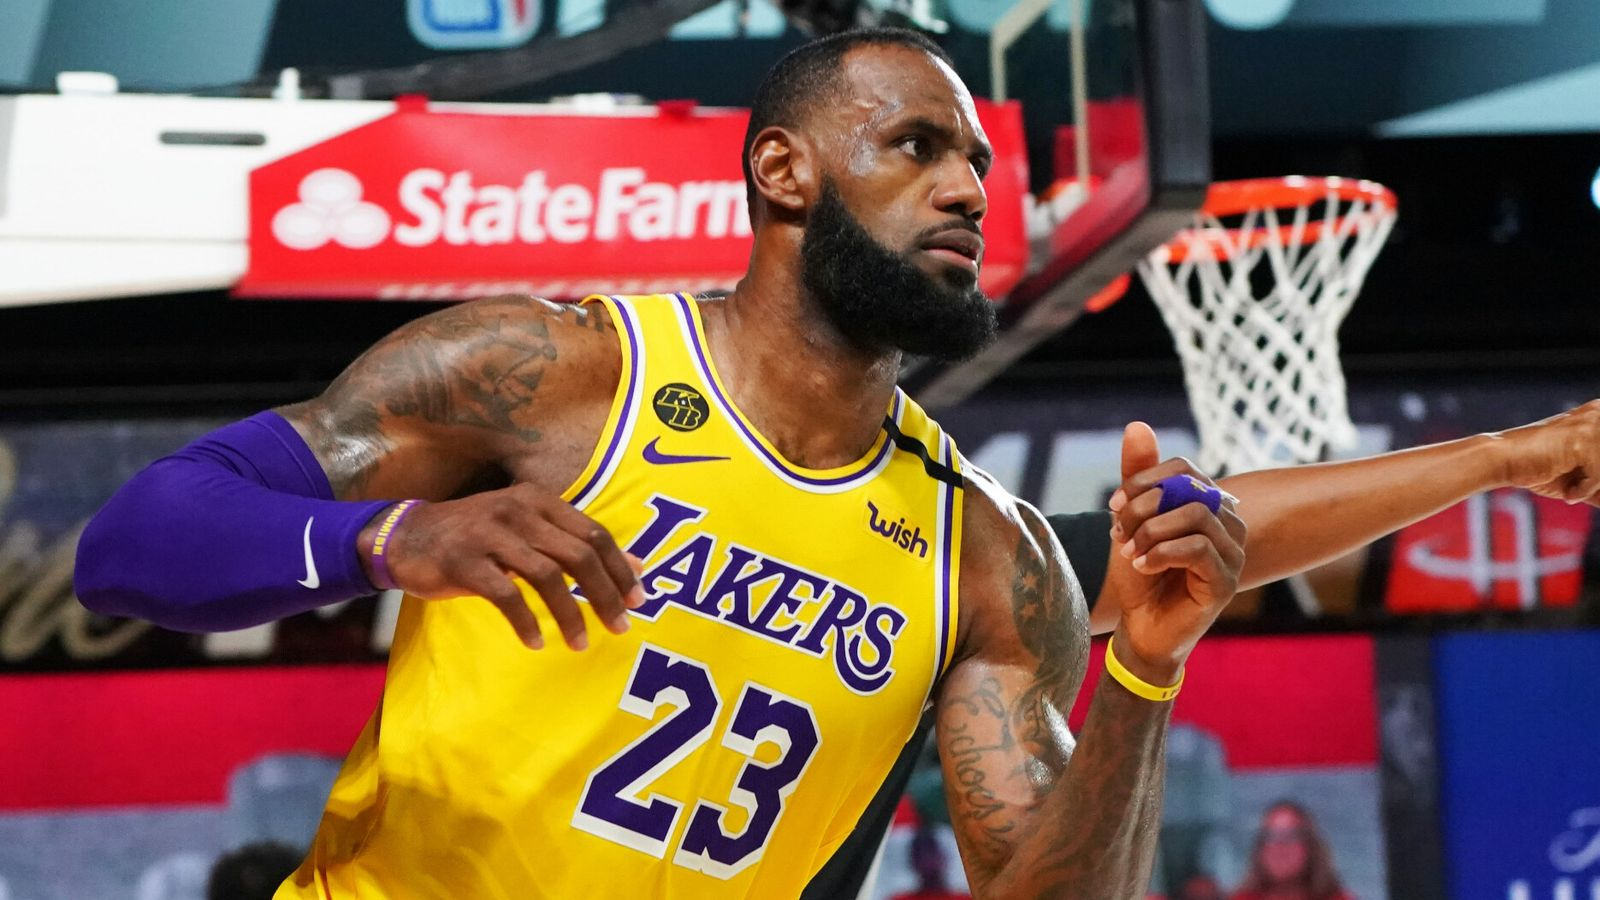 Lebron James Says Los Angeles Lakers Must Close Out Games The Right Way Nba News Lenexweb